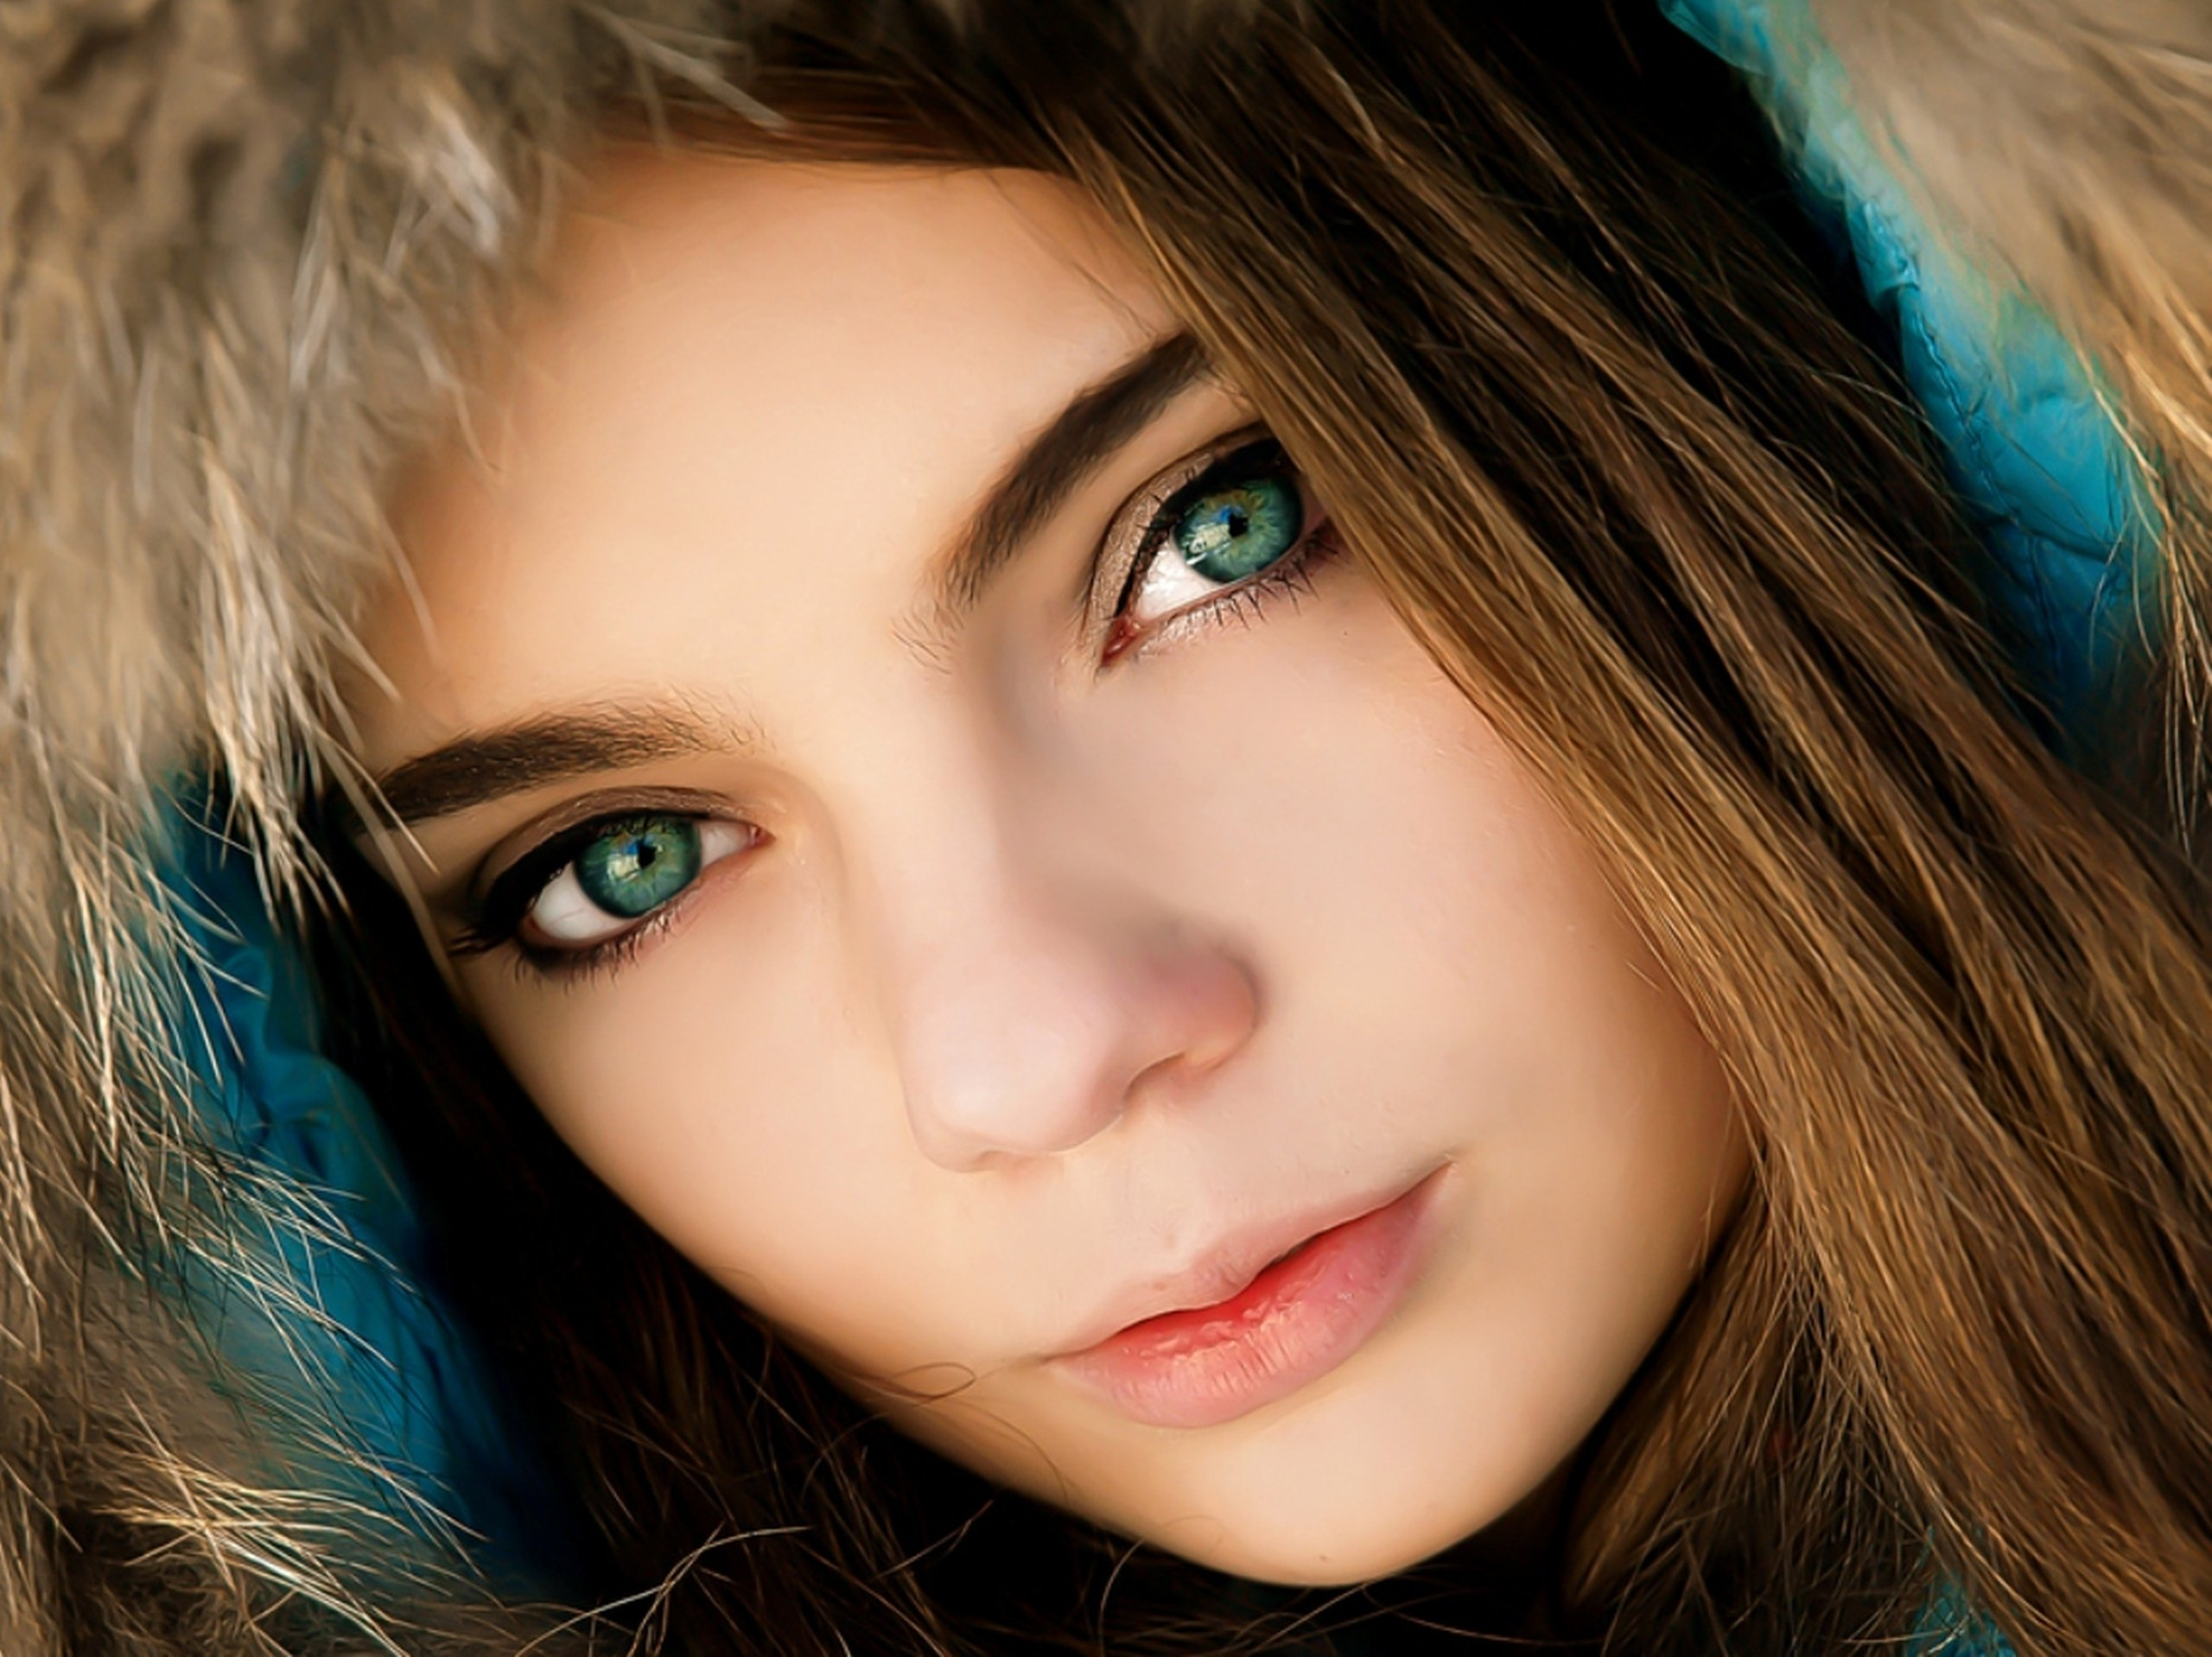 Lady with green eyes